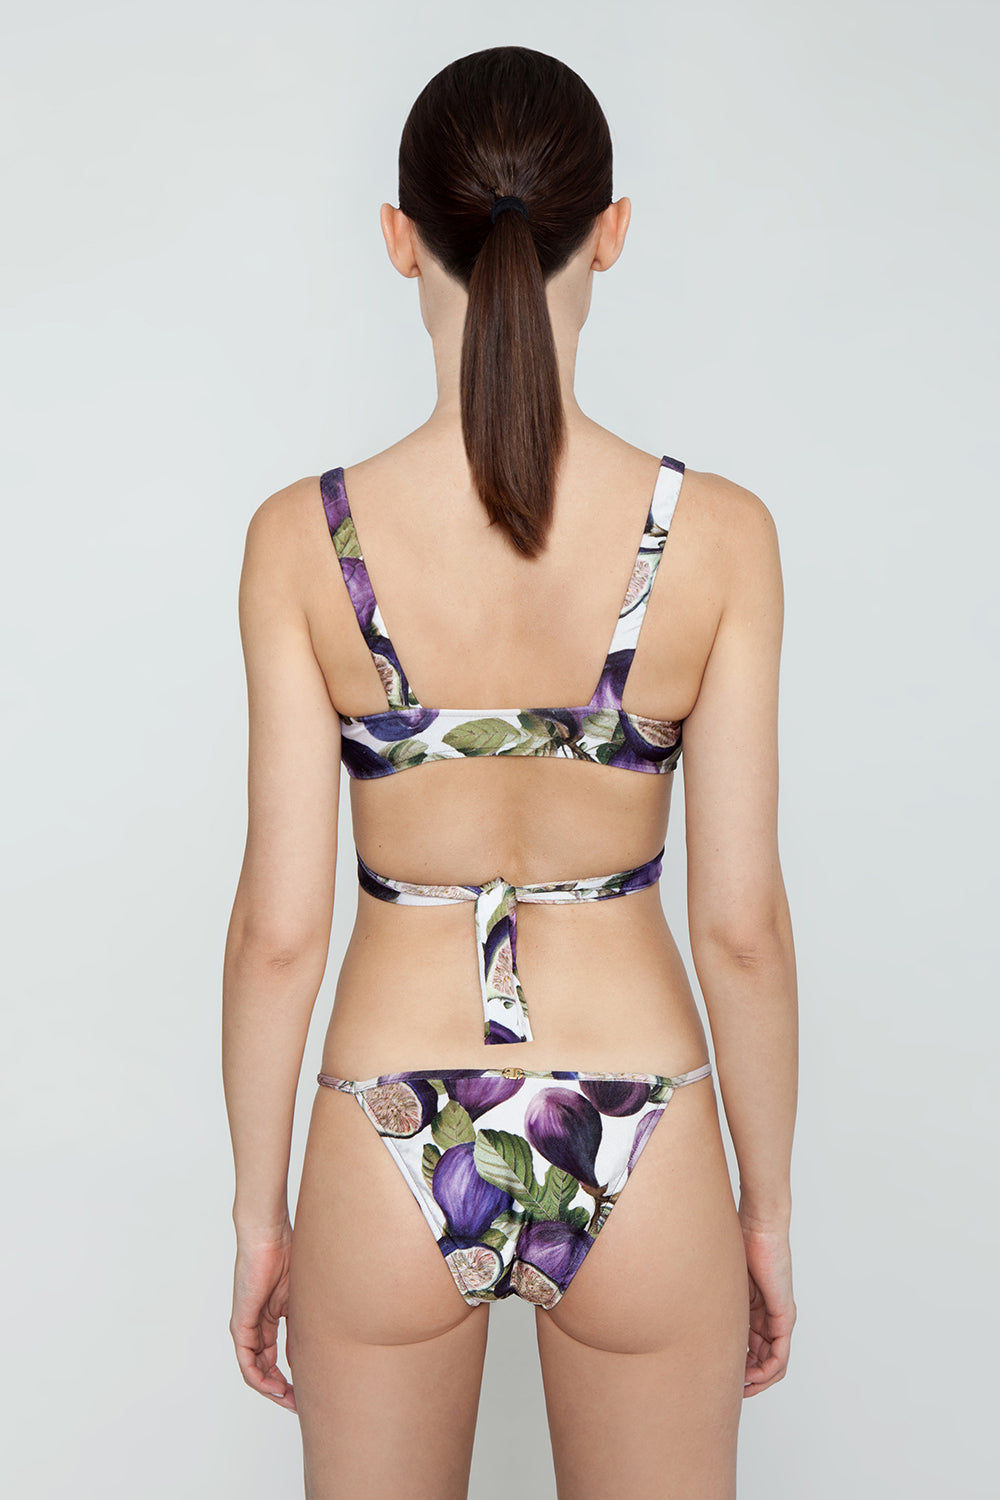 ADRIANA DEGREAS Thin Strap Bikini Bottom - Fig Purple Print Bikini Bottom | Fig Purple Print| Adriana Degreas String Bikini Bottom - Fig Purple Print String thin straps Low rise Cheeky coverage Back View